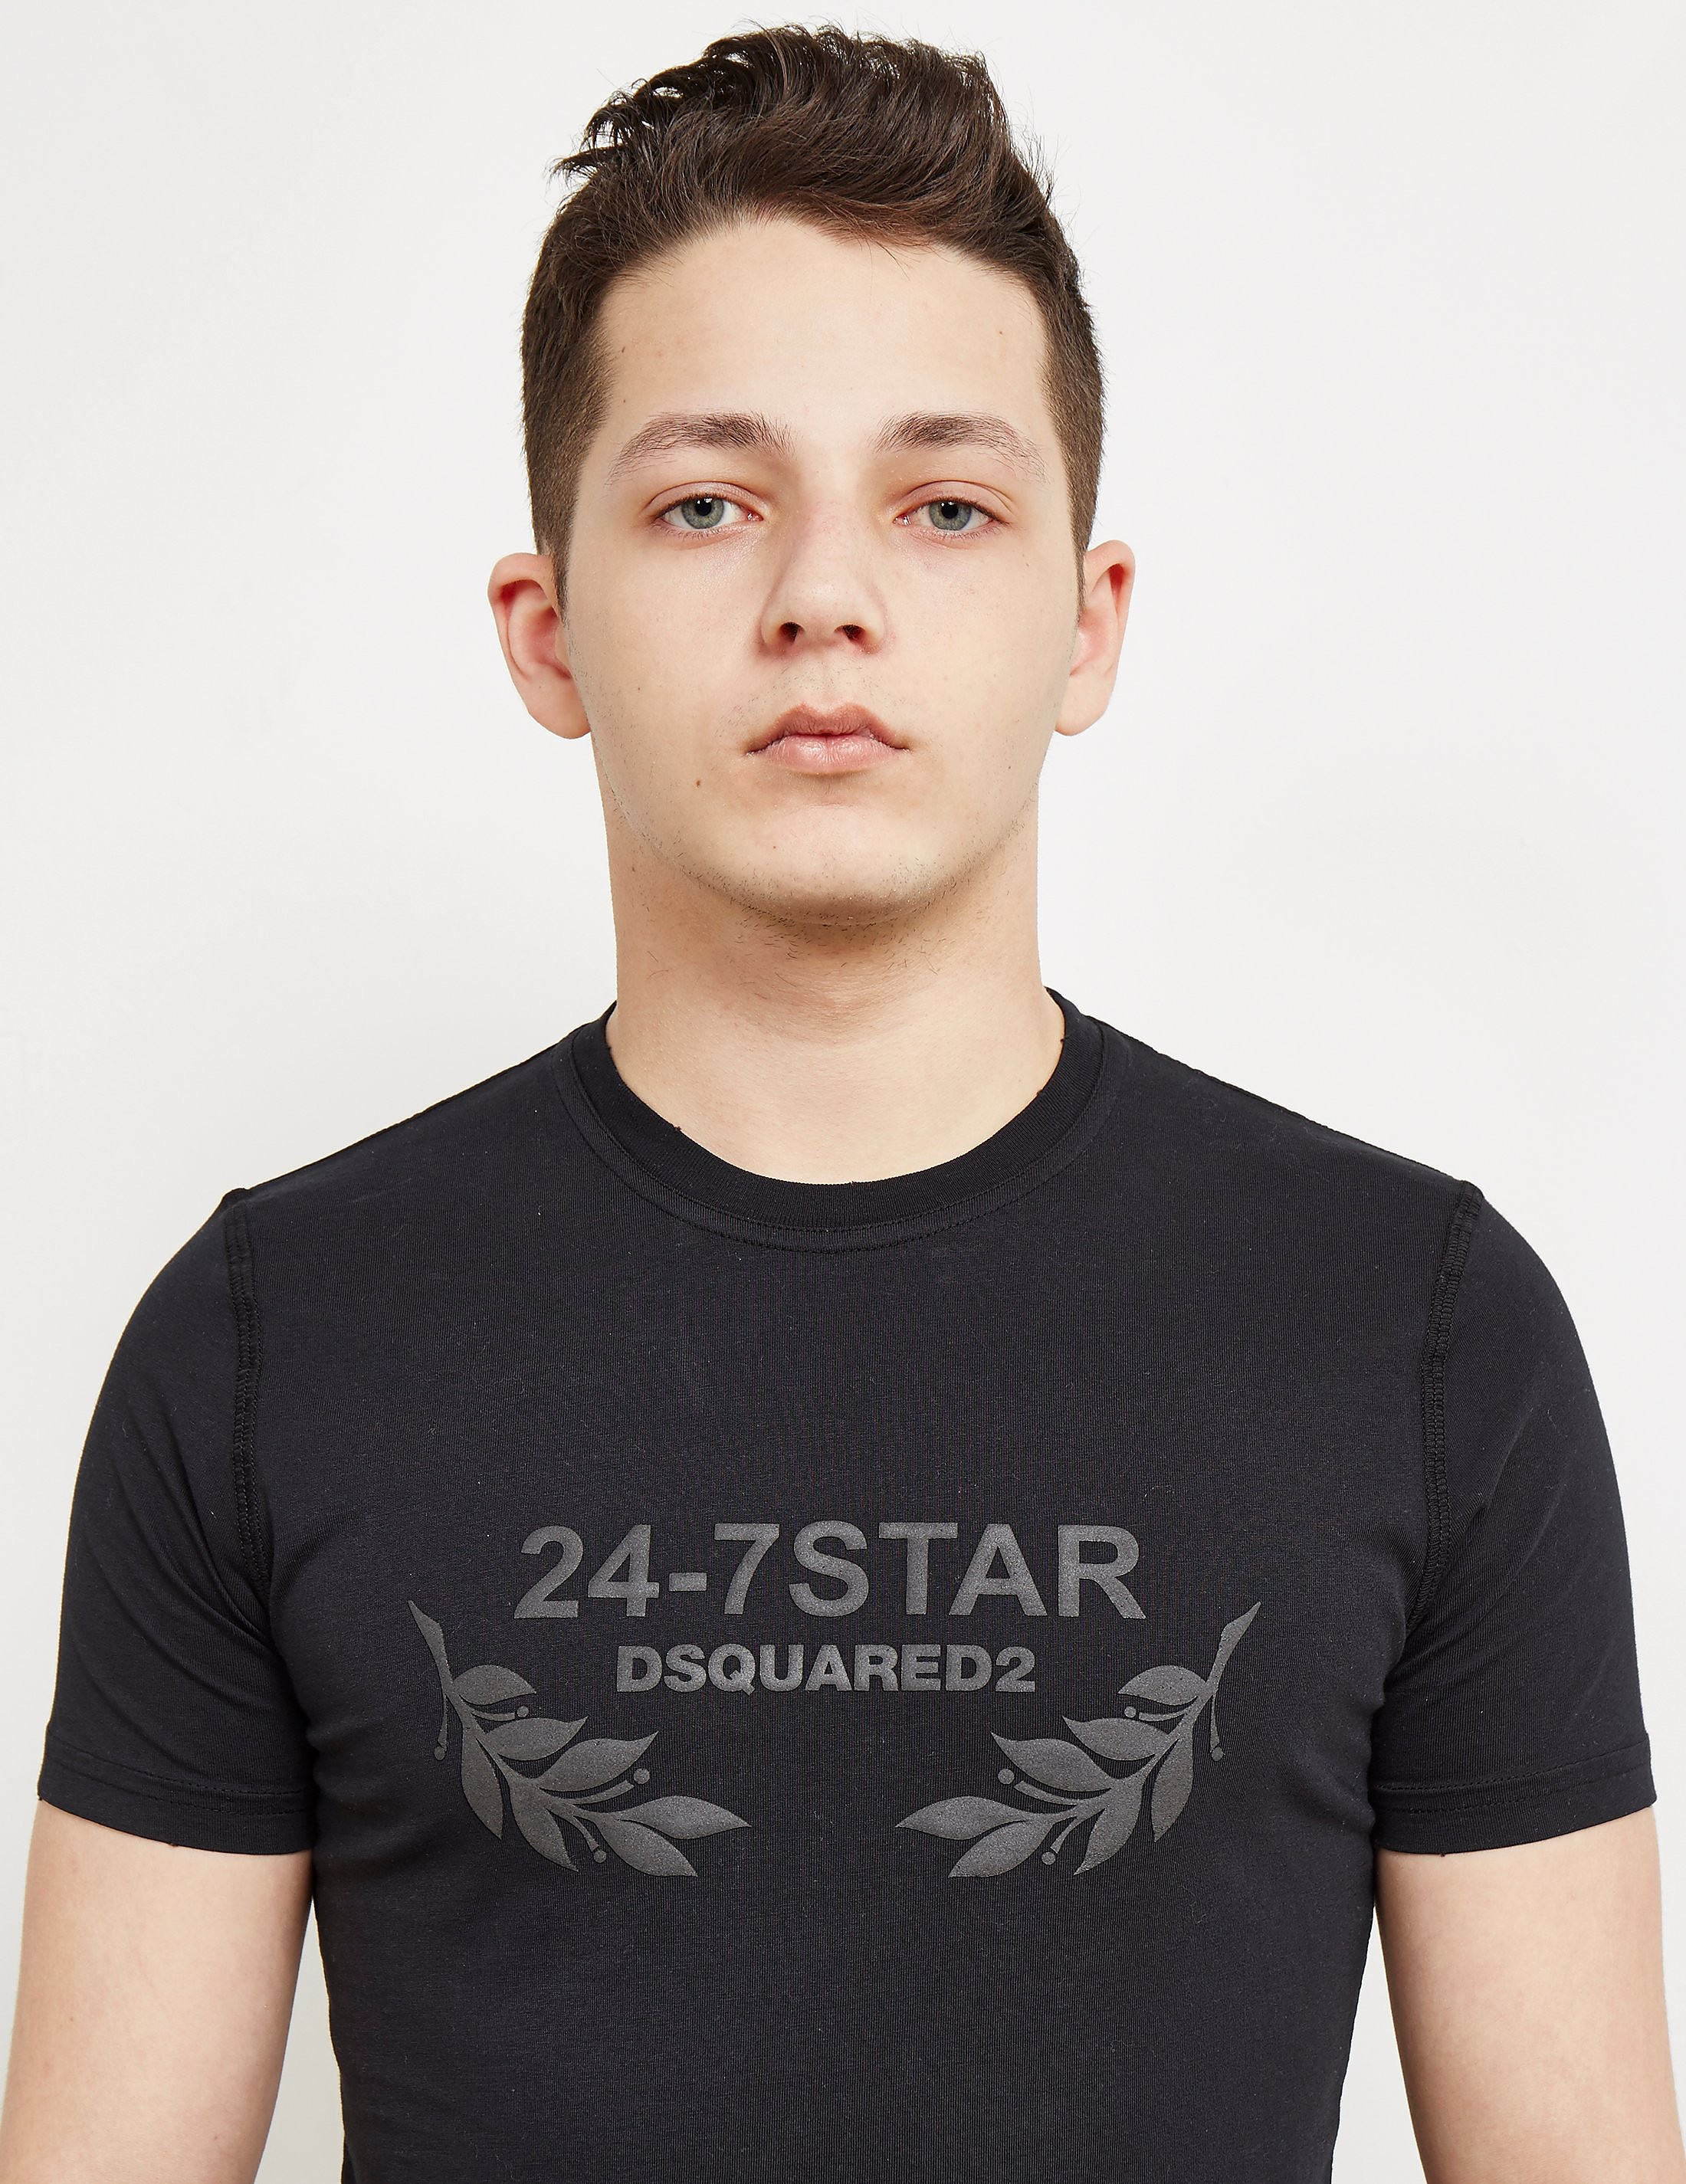 DSQUARED2 247 Star Short Sleeve T-Shirt